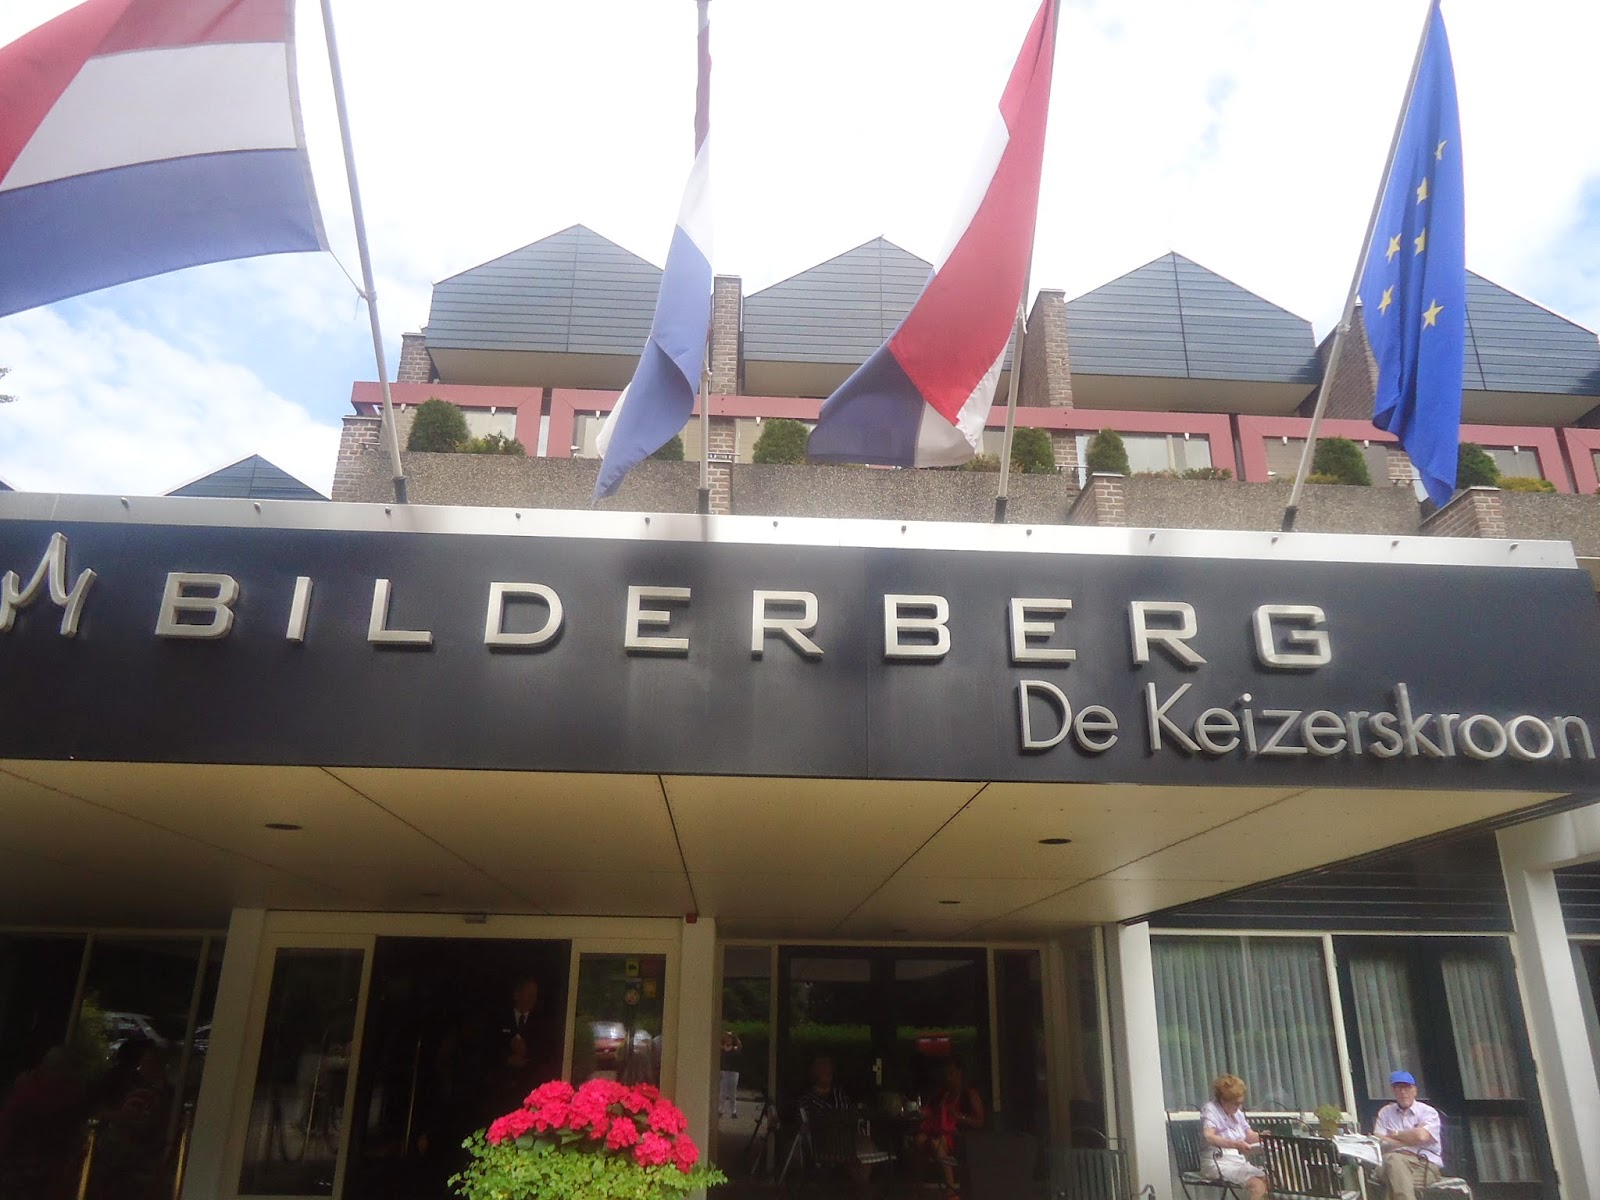 Hotel Bilderberg Keizerskroon Apeldoorn The Netherlands Travel